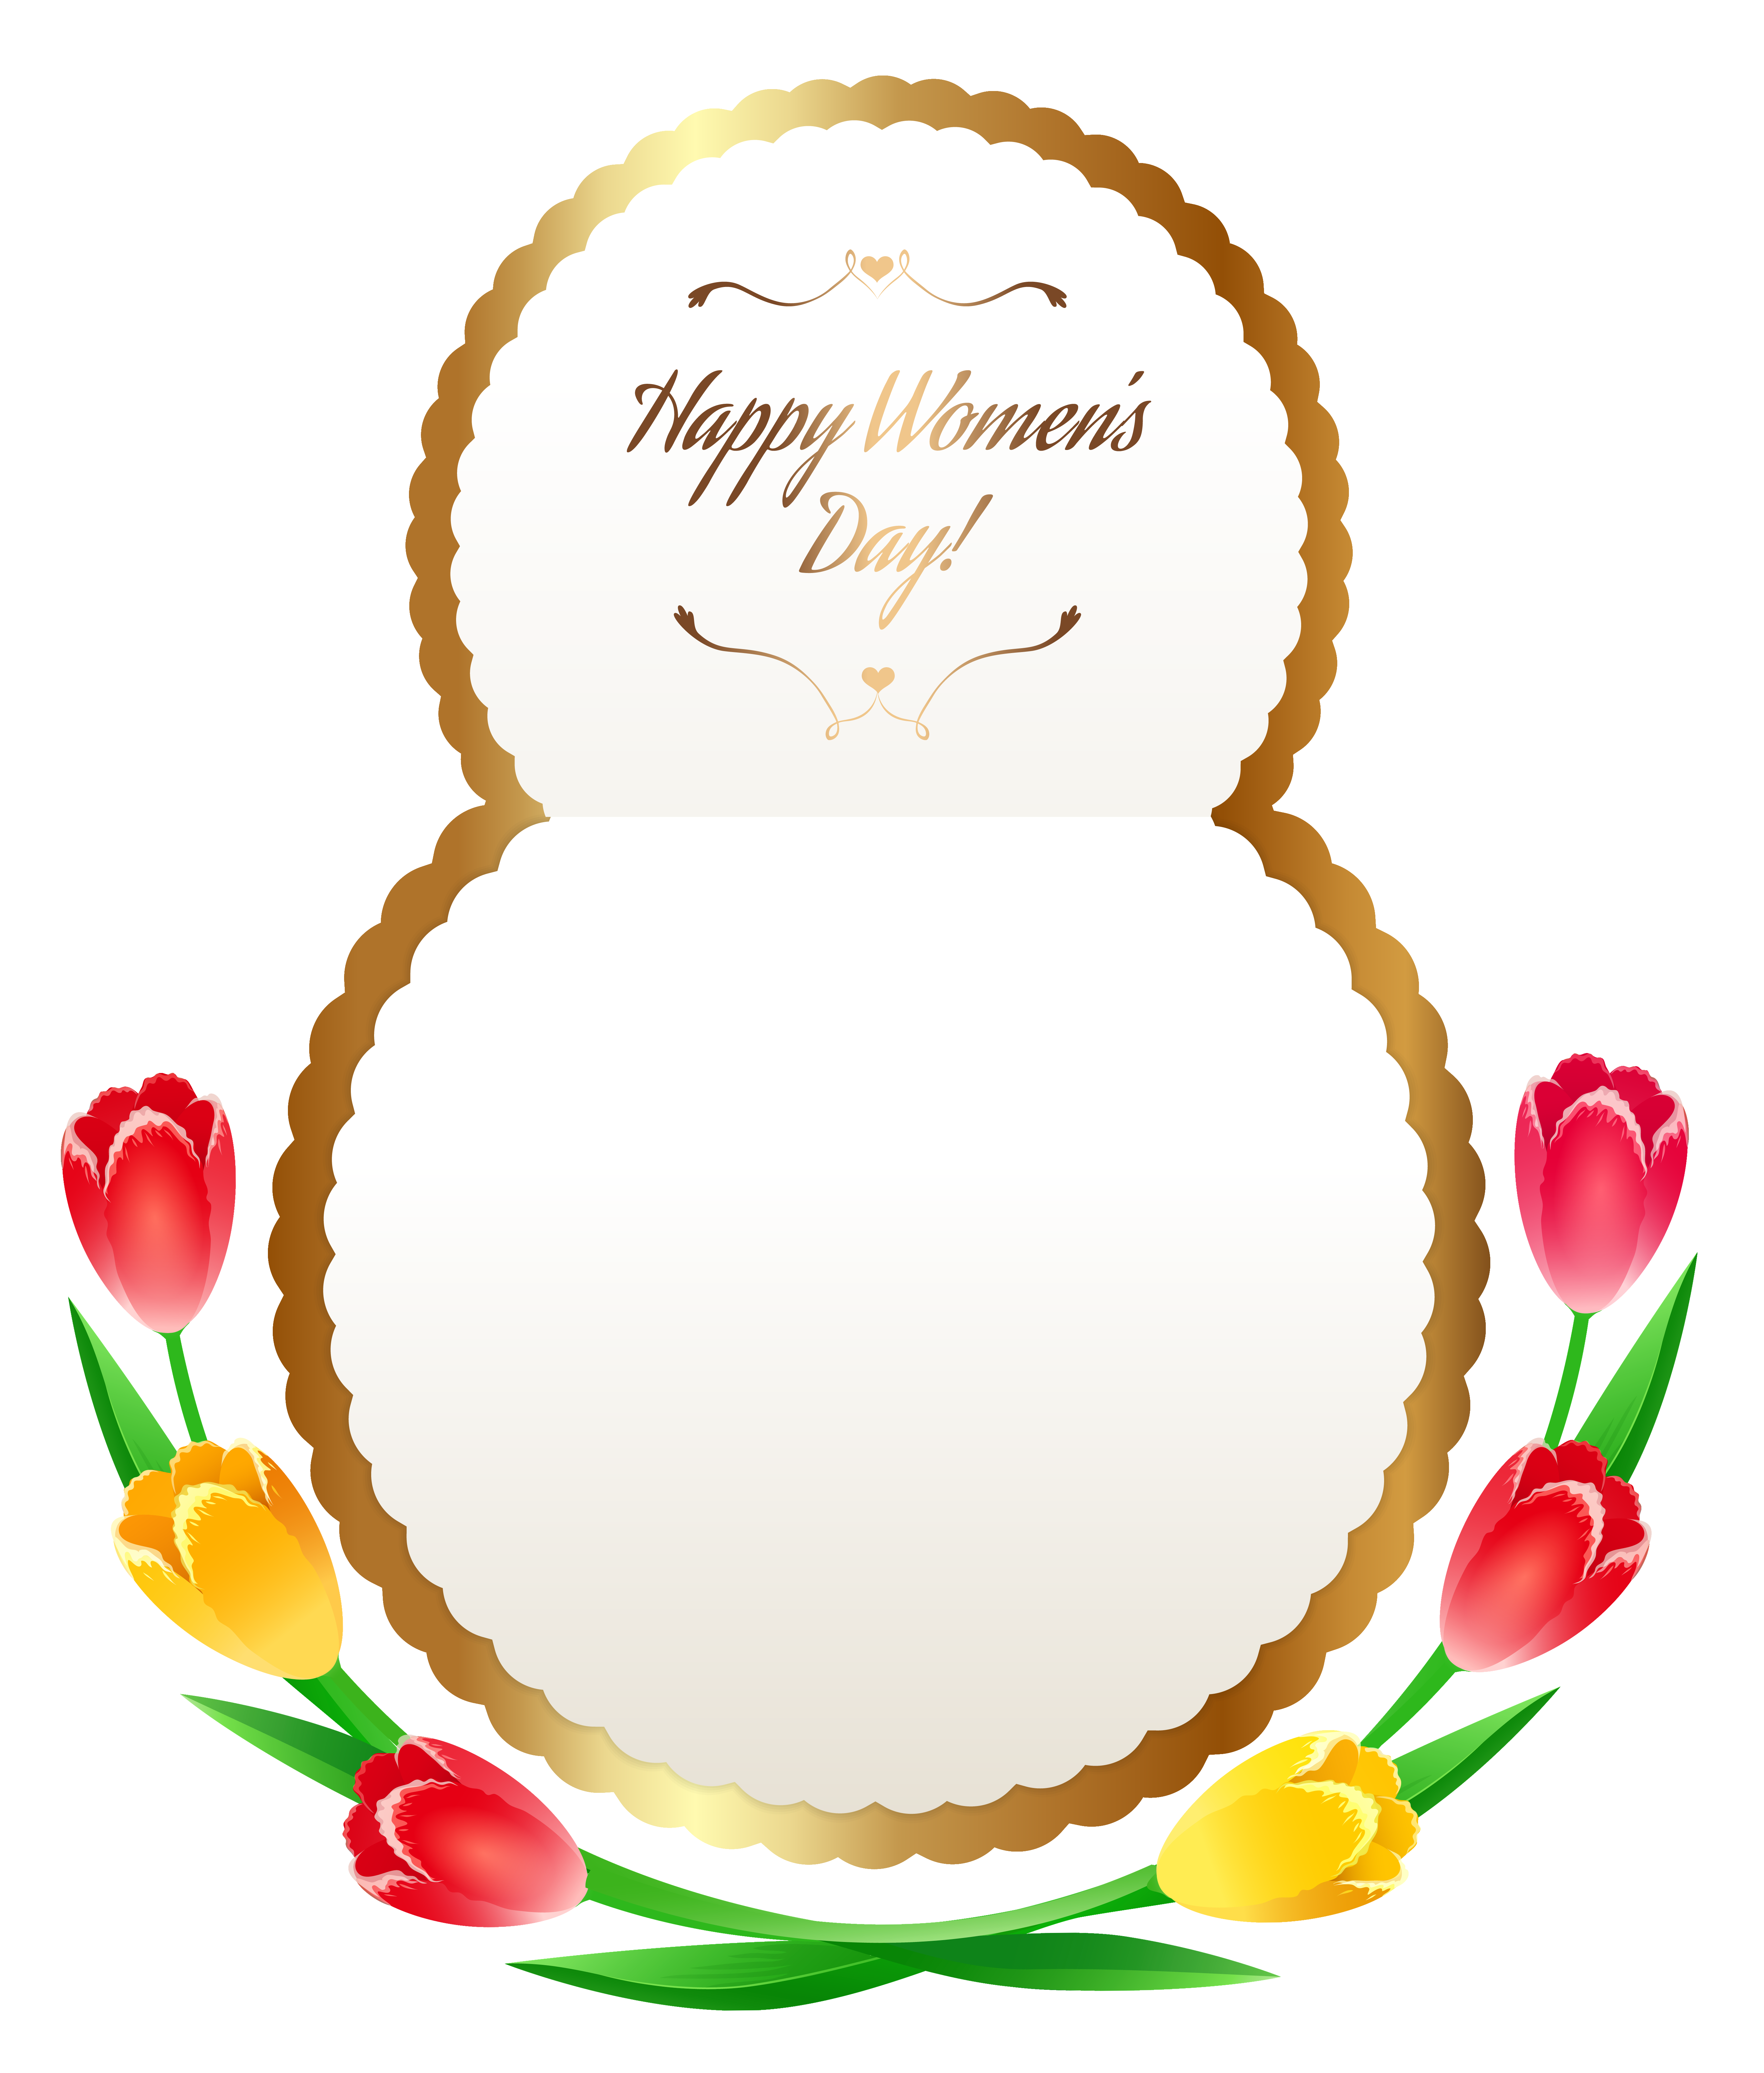 Happy Womens Day PNG Clipart Image.